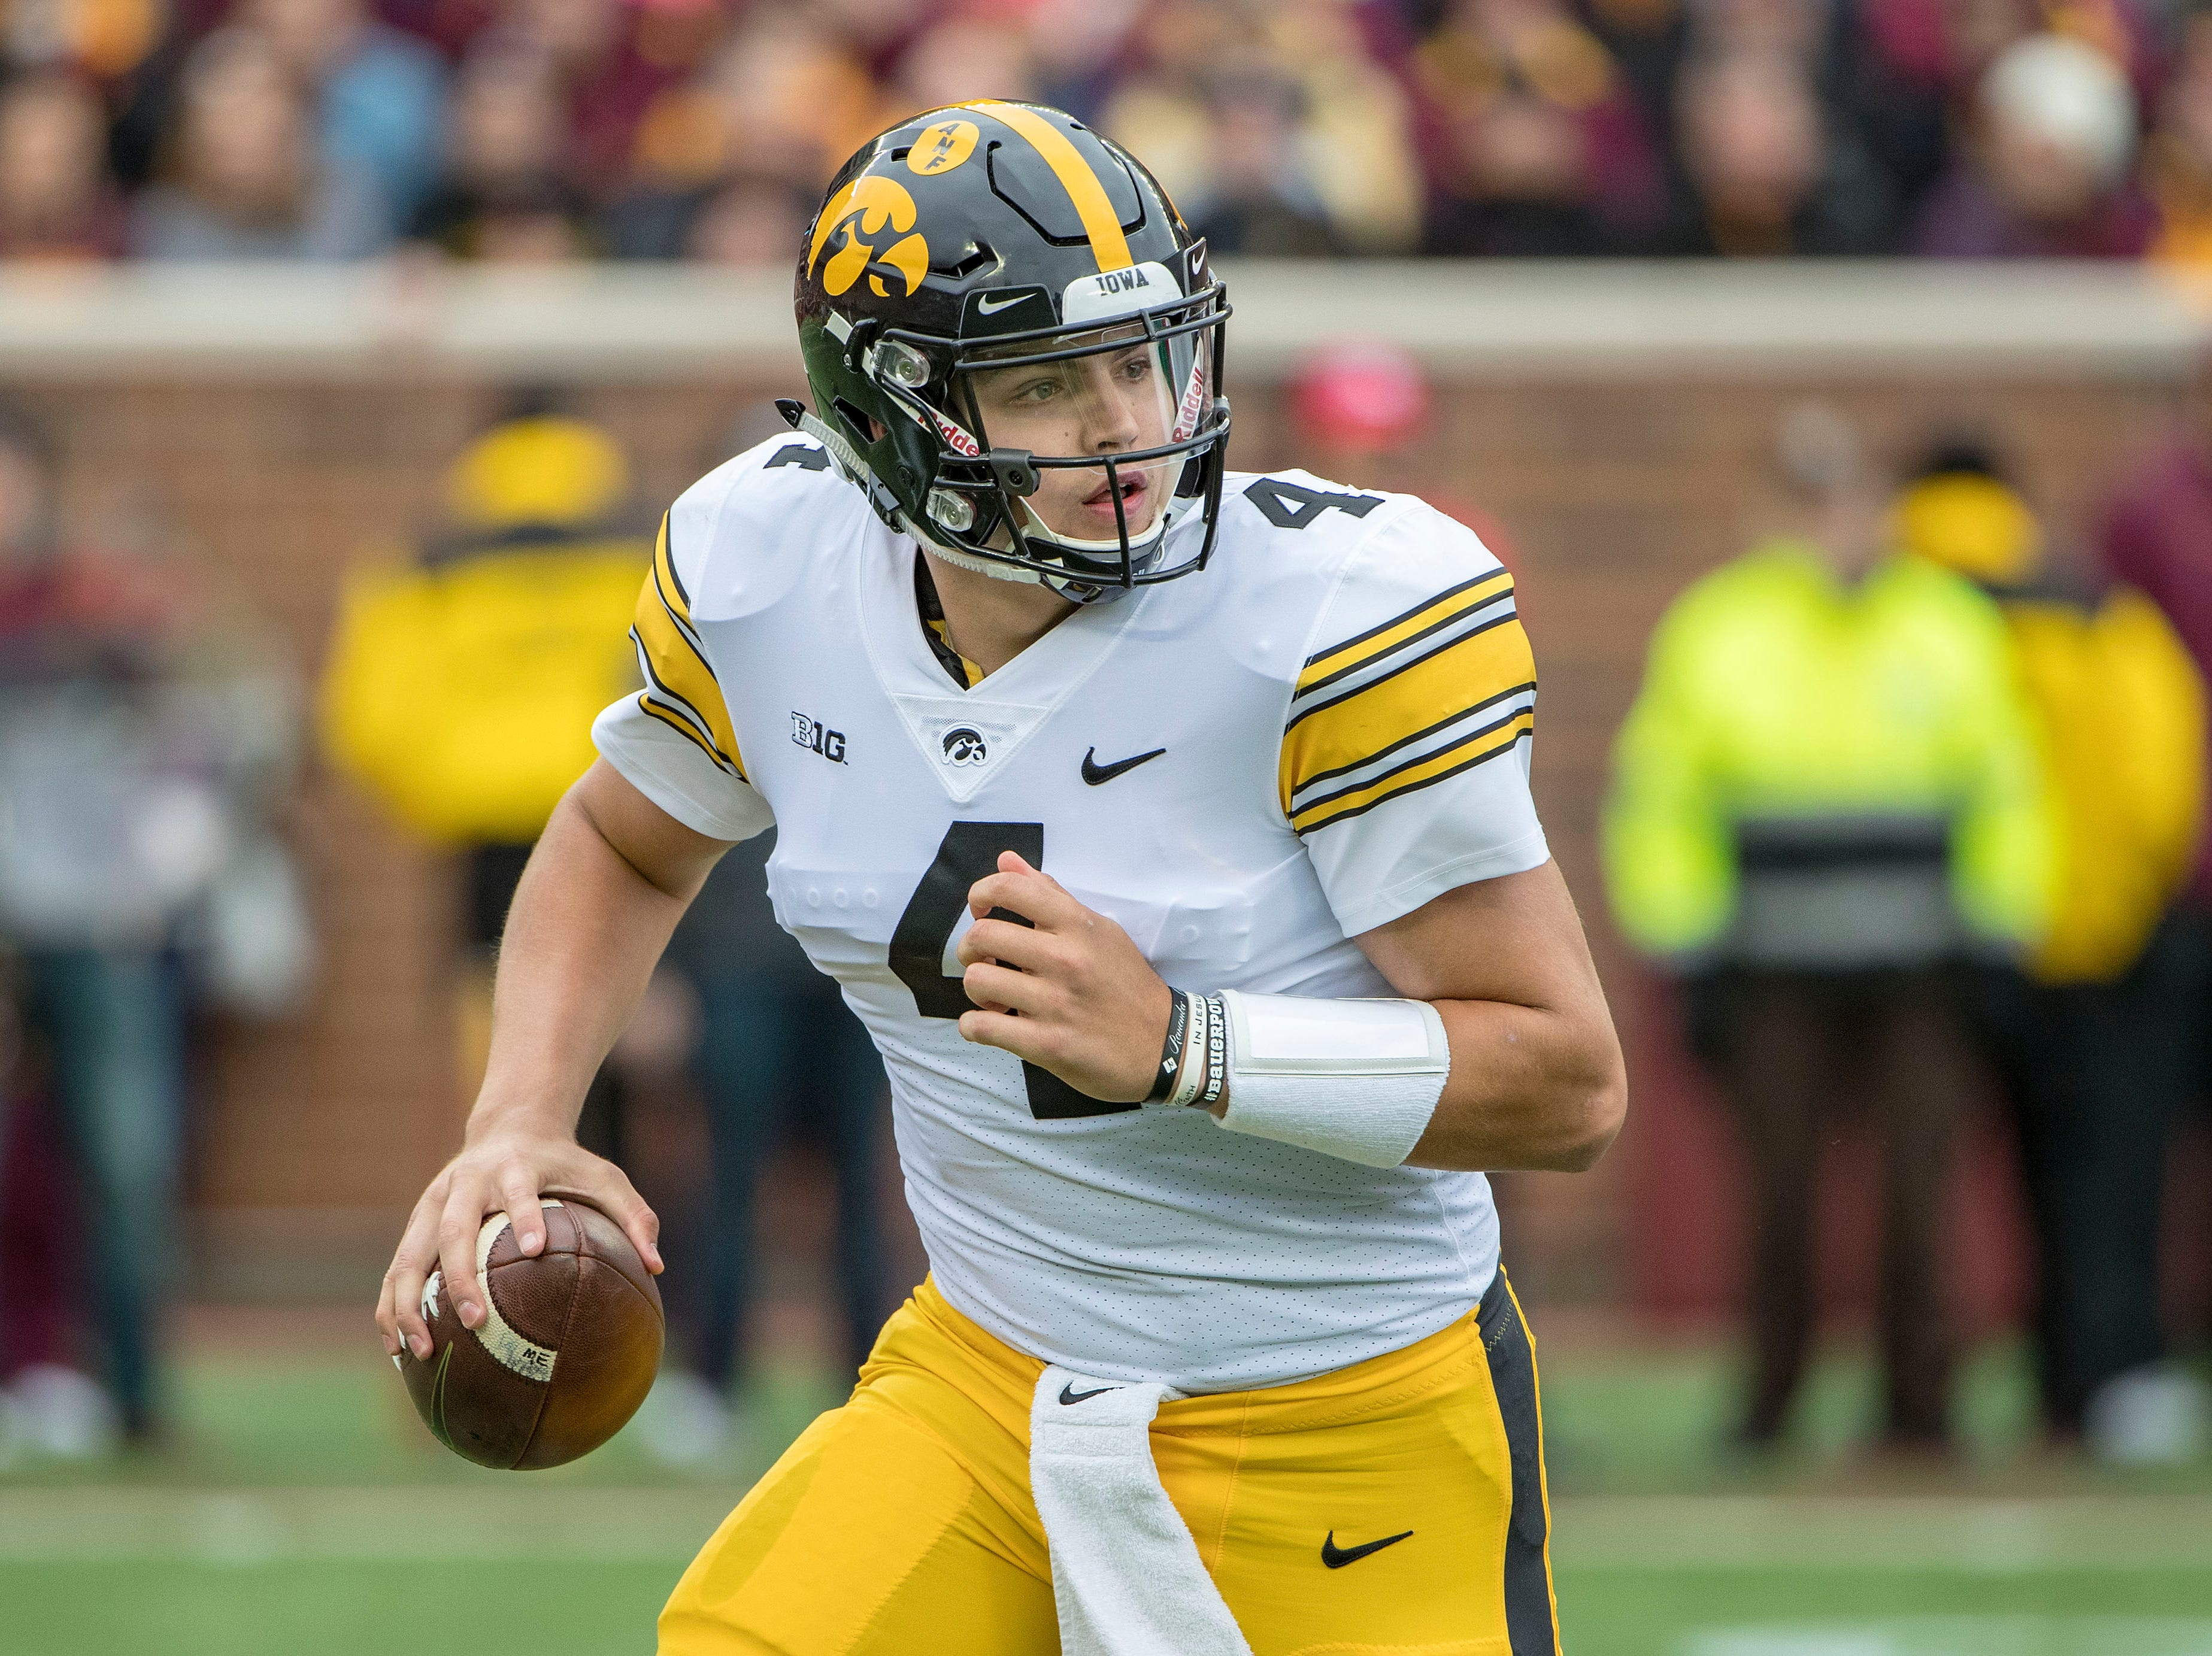 Oct 6, 2018; Minneapolis, MN, USA; Iowa Hawkeyes quarterback Nate Stanley (4) drops back for a pass in the first half against the Minnesota Golden Gophers at TCF Bank Stadium. Mandatory Credit: Jesse Johnson-USA TODAY Sports